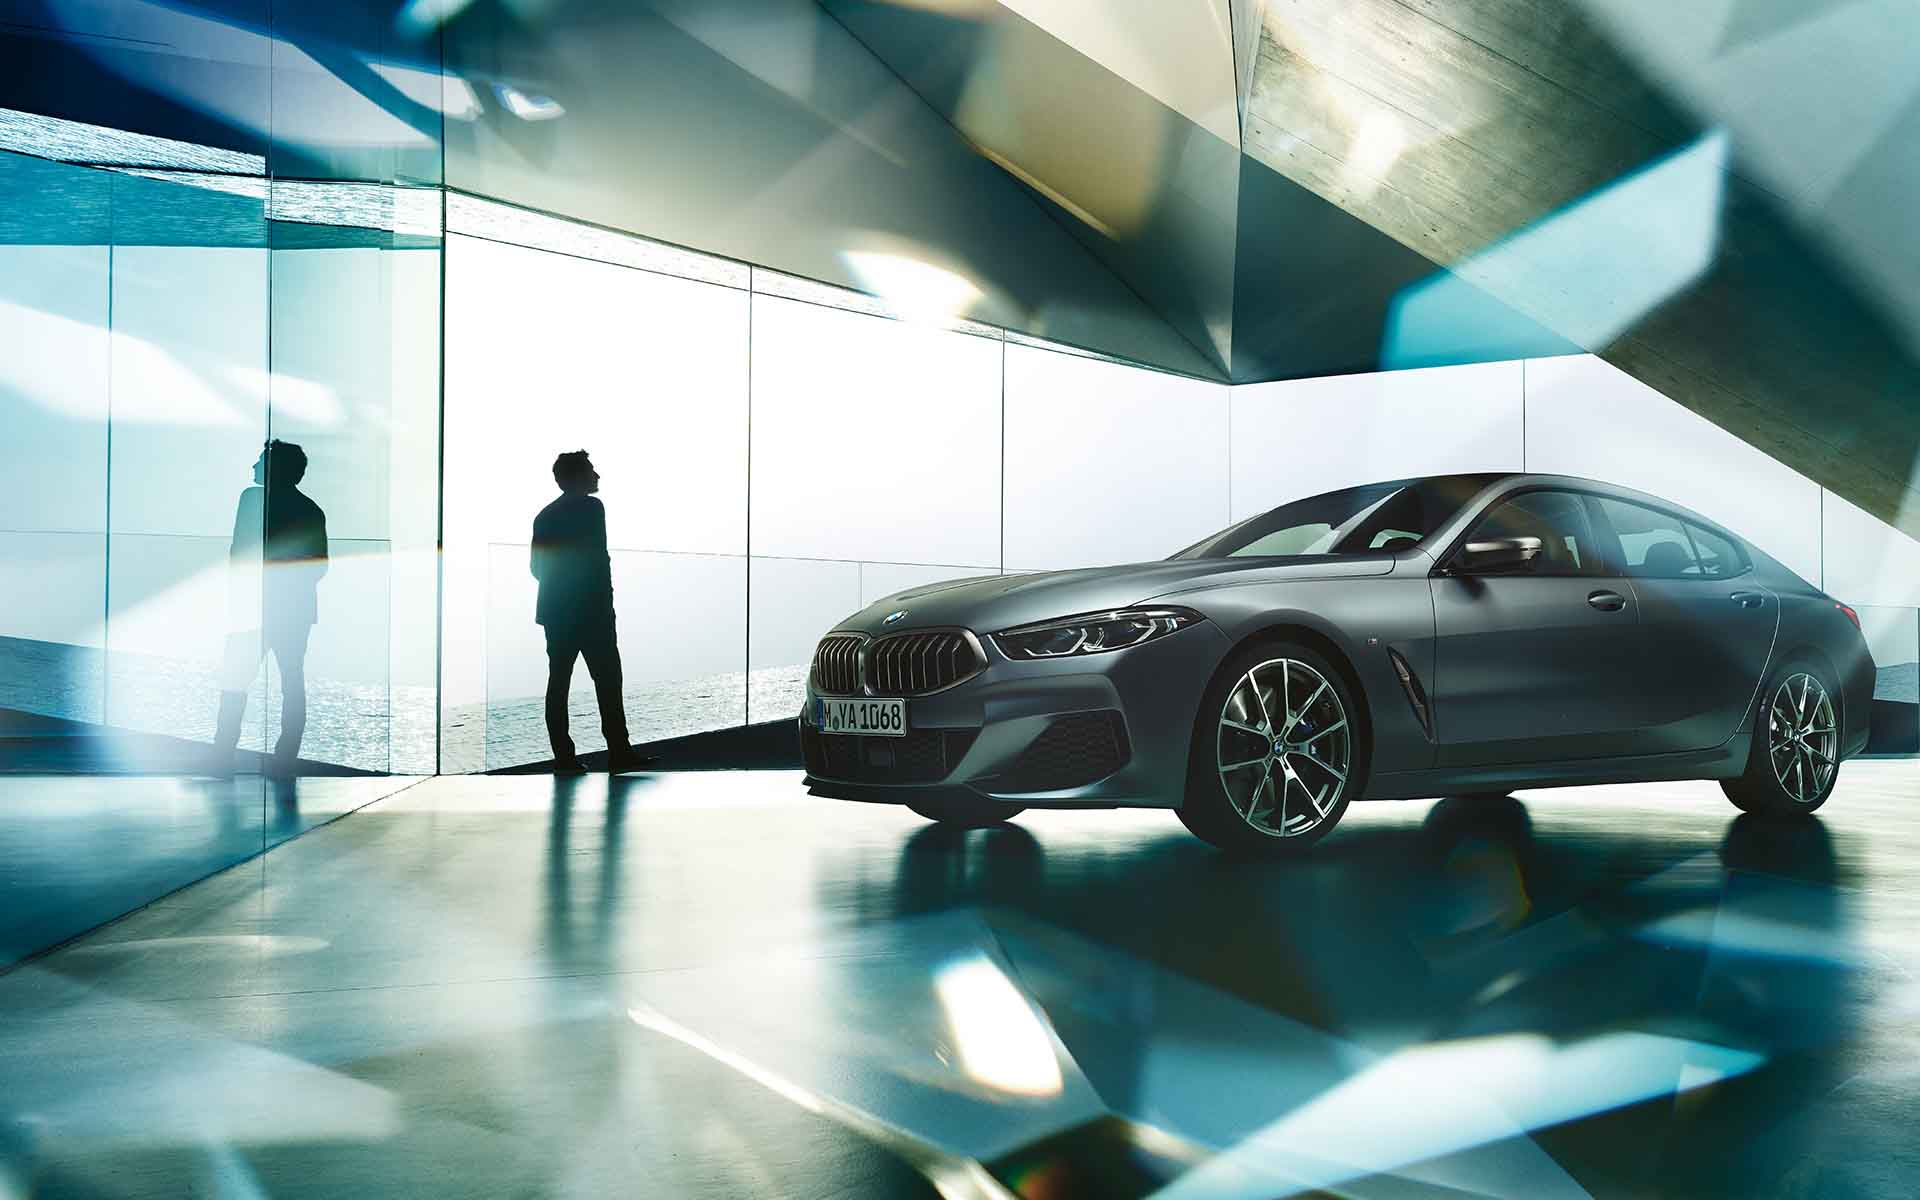 The BMW 8 Series Gran Coupé